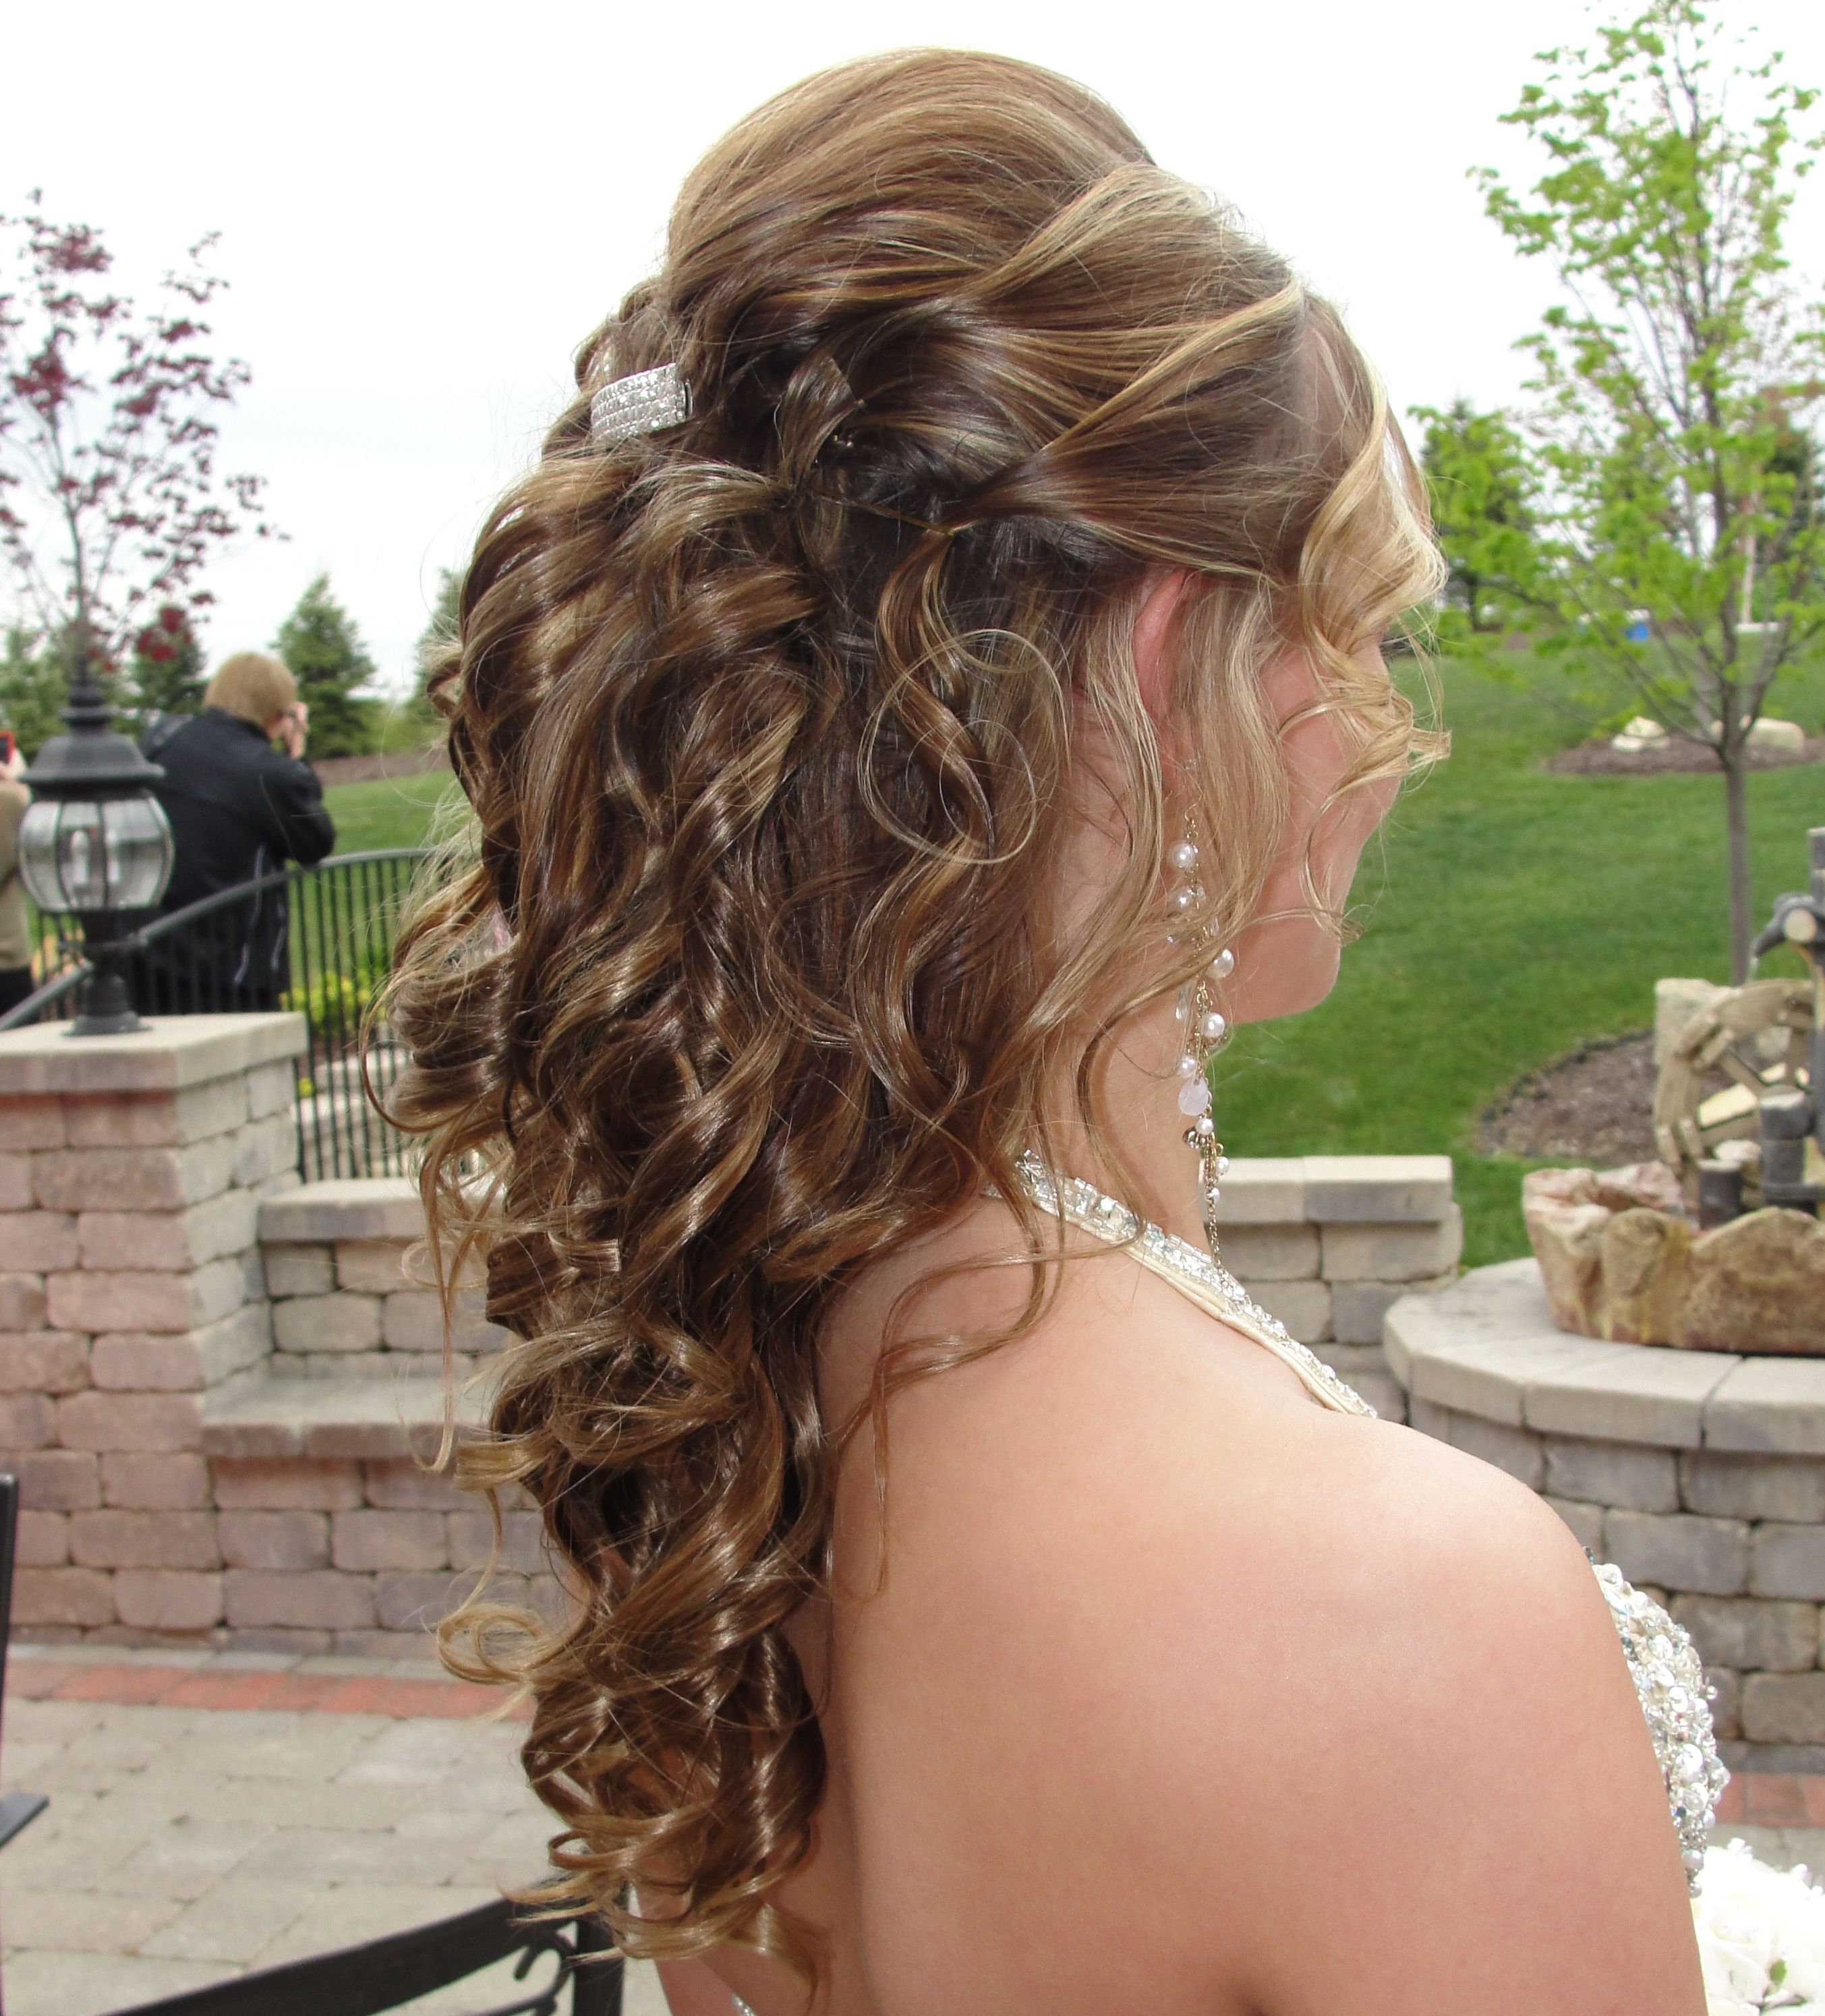 half up half down long hair updo~ stylist: jeanette at salon 151